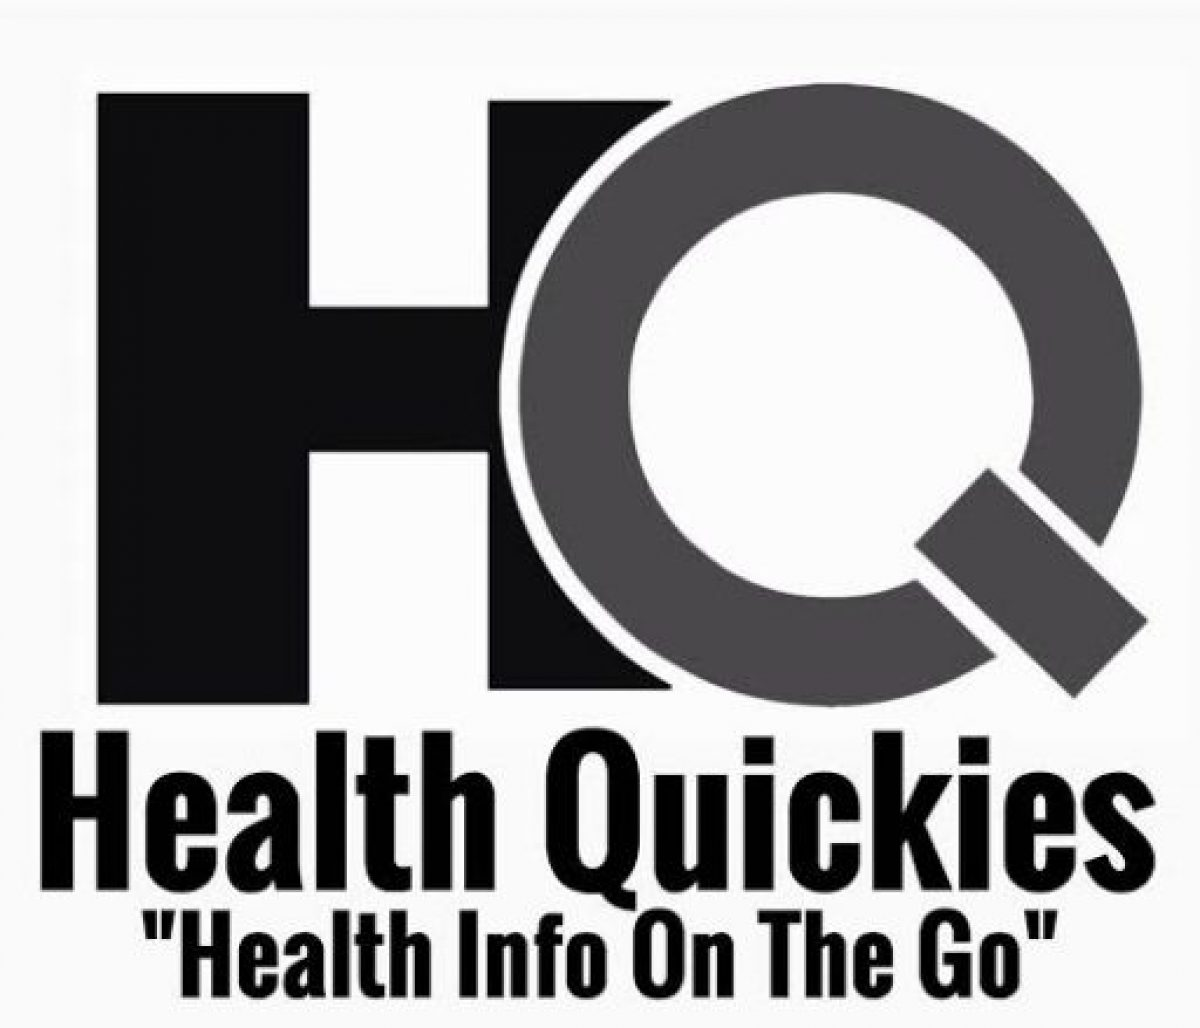 Health Quickies